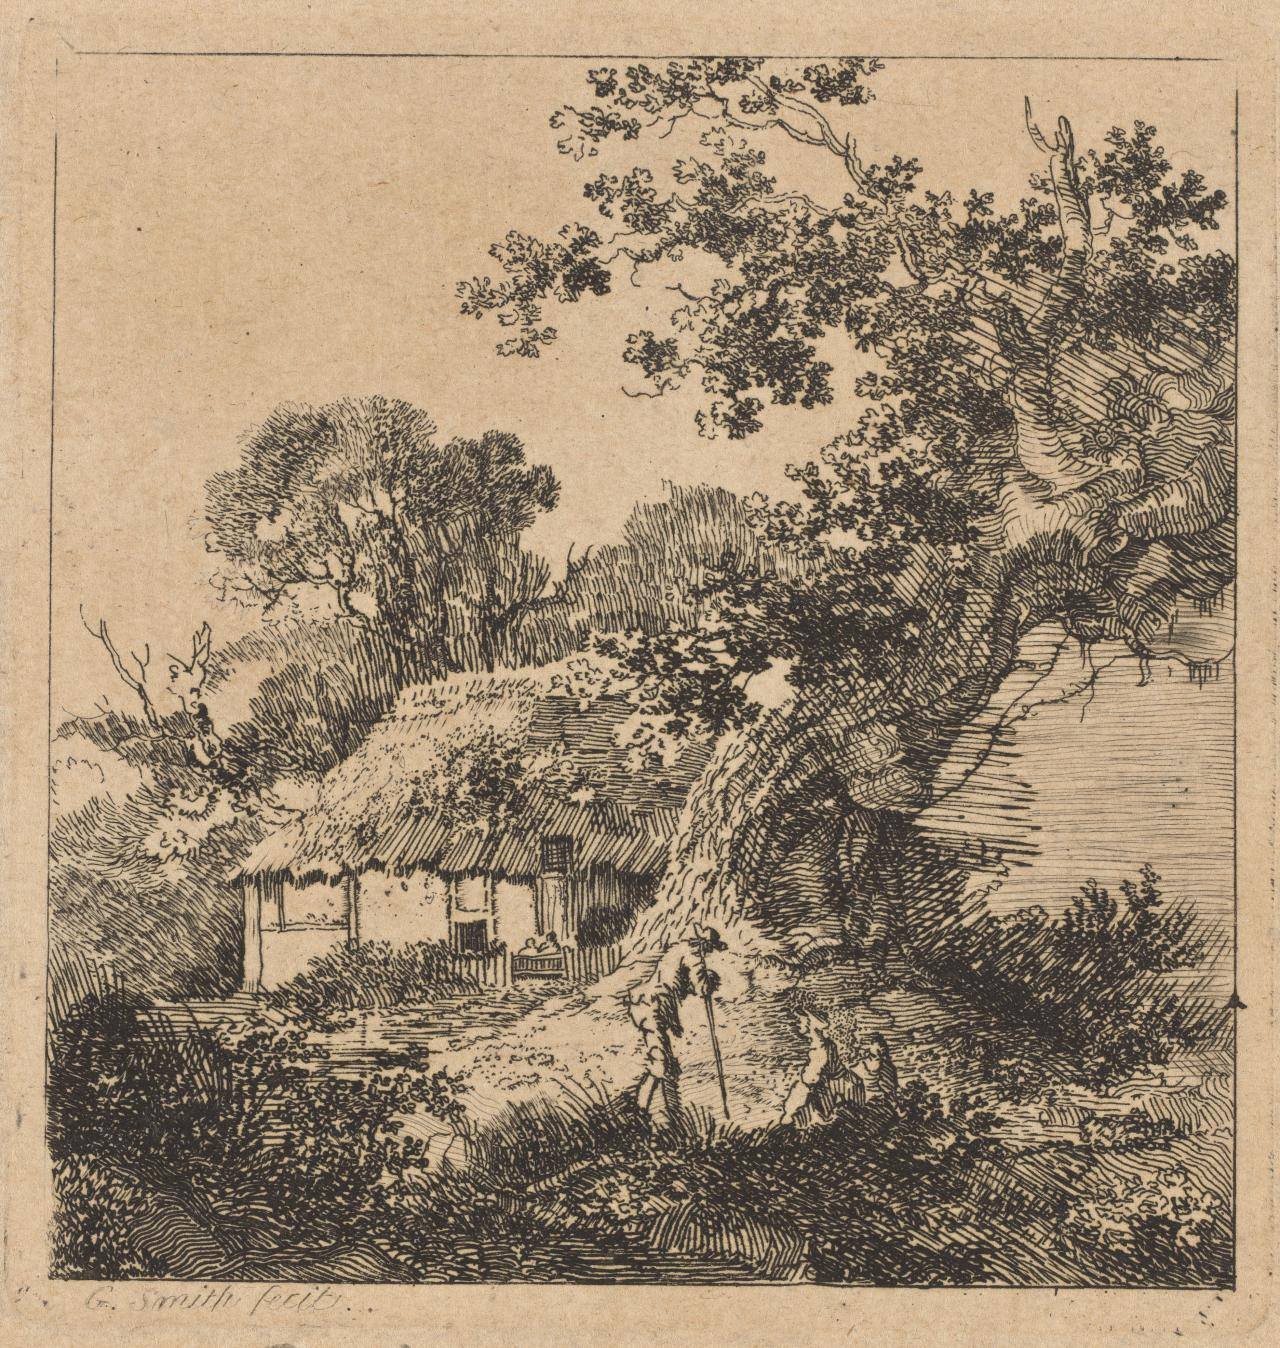 Untitled (Gnarlled tree, cottage and stooped figure)